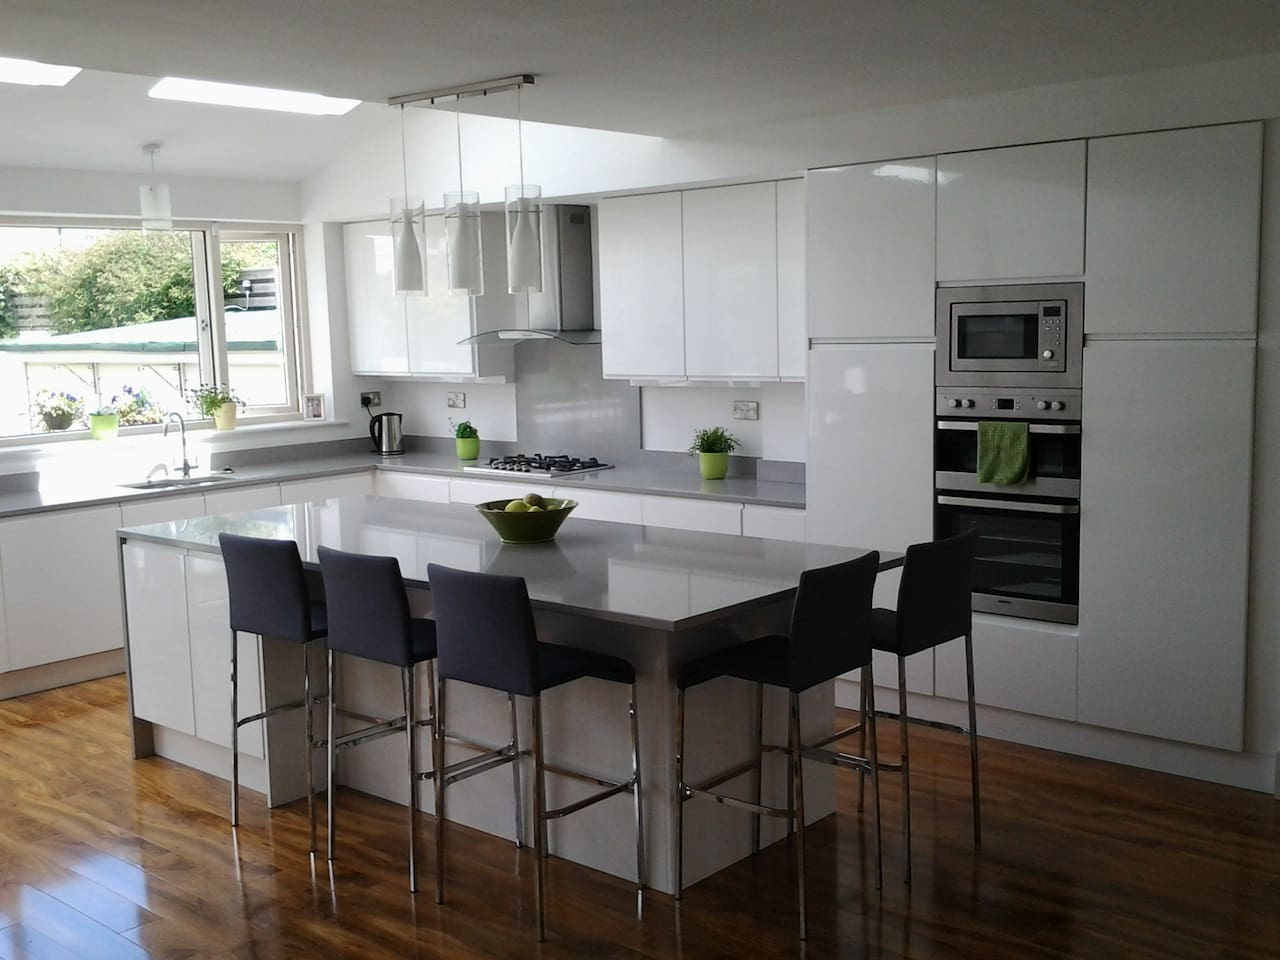 Modern kitchen with all appliances and facilities